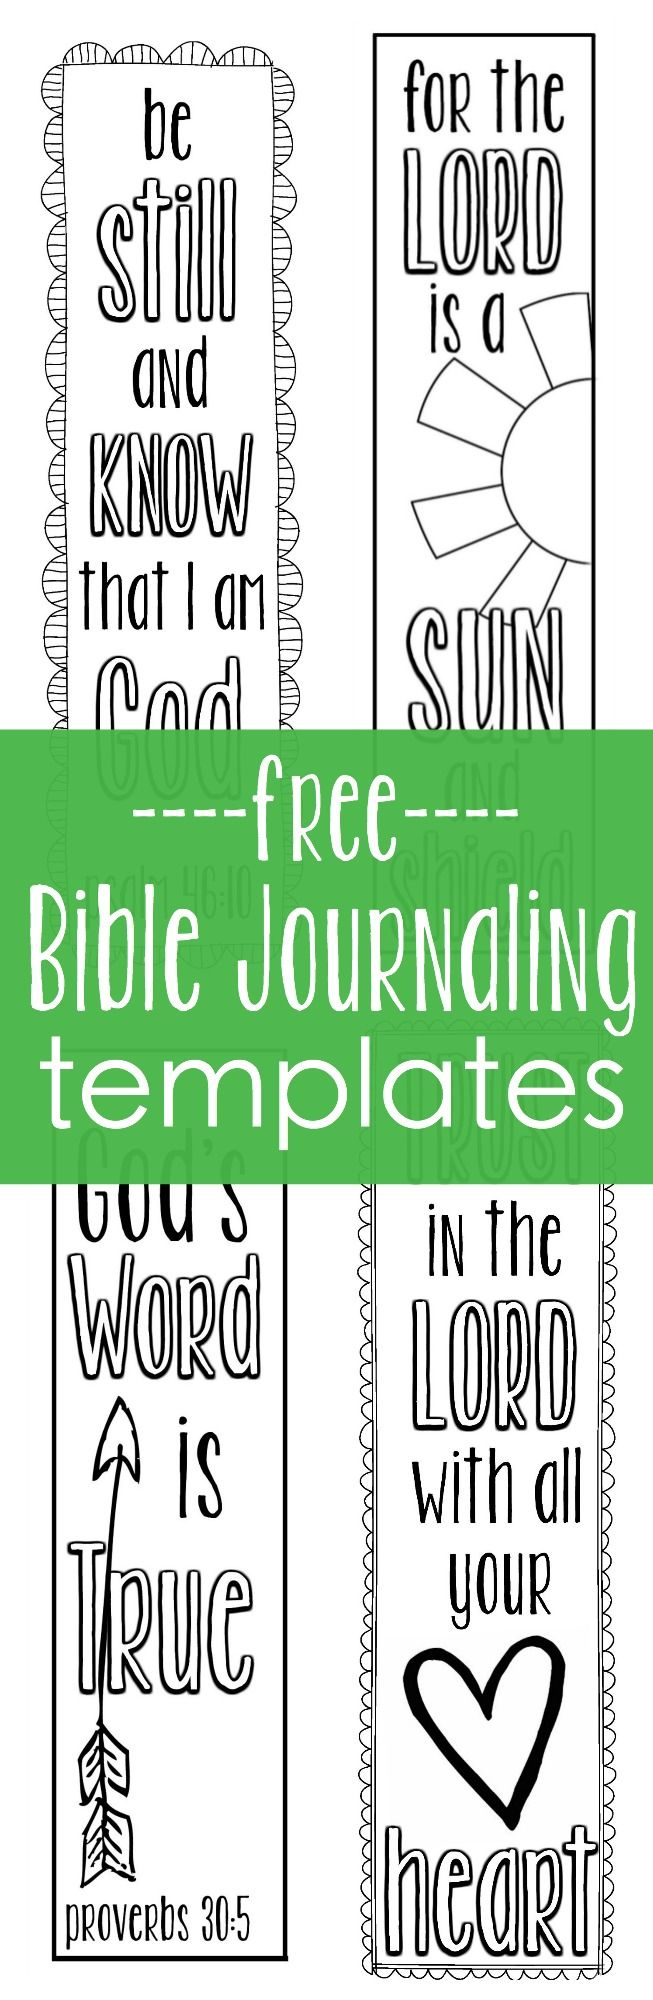 Need help getting started Bible journaling? Use these free Bible Journaling templates that you can print and trace right in the margins of journaling Bible.free Bible journaling templates